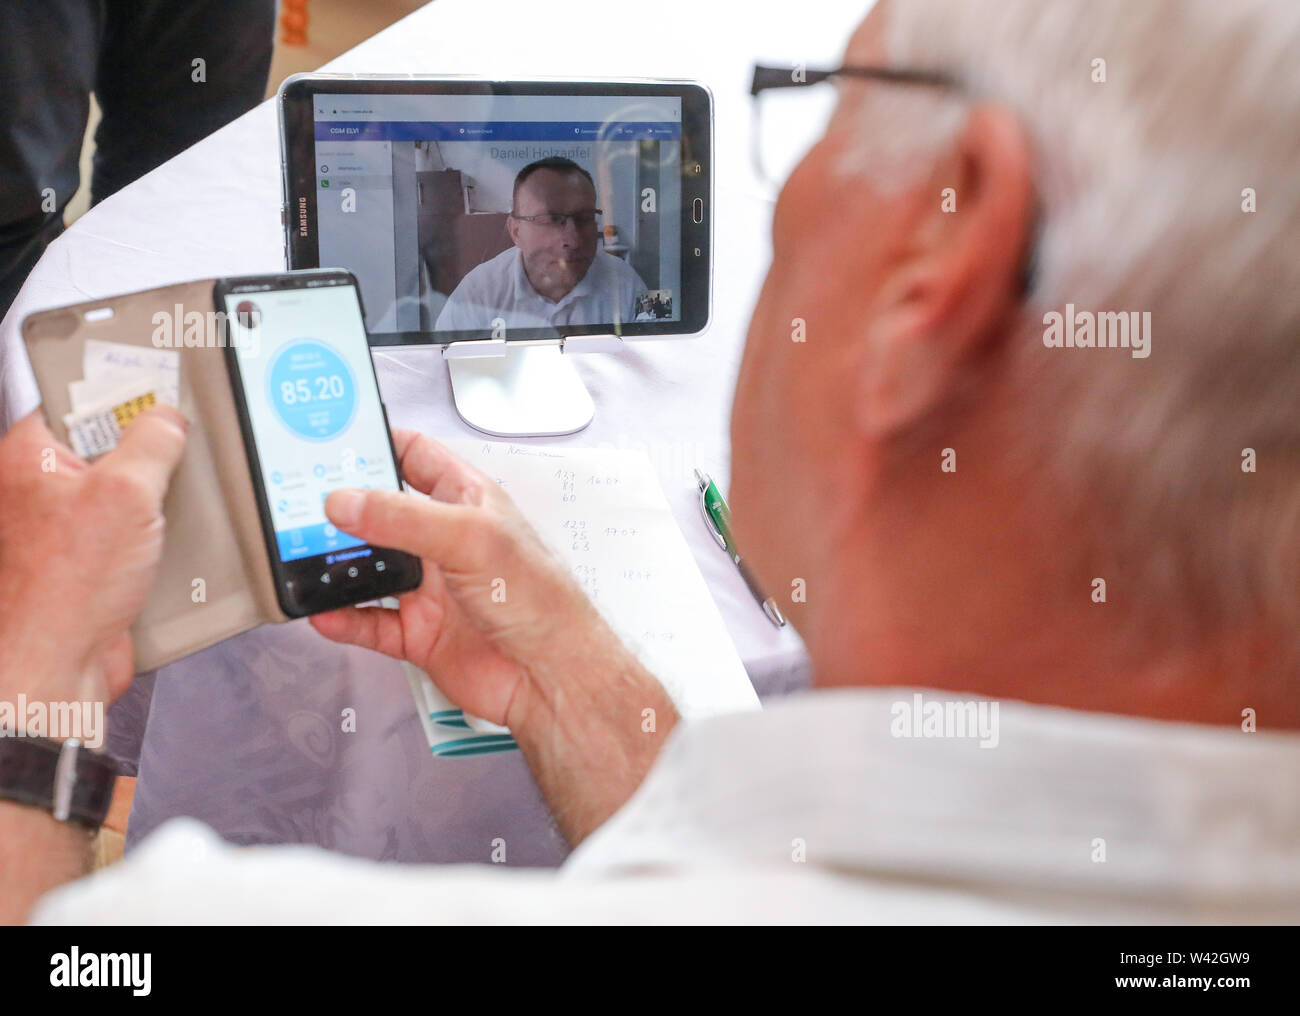 19 July 2019, Saxony-Anhalt, Halle (Saale): Pensioner Norbert Neumann talks about a video call via tablet with his family doctor. From the point of view of a housing cooperative in Halle, telemedicine could be a great help, especially for older people. In a project in 20 apartments, 94 percent of the test persons rated the digital doctor's interview as very good or good. For the 'Haendel II' project, 20 apartments were equipped with the appropriate technology. Subjects were able to reach a doctor via tablet. Photo: Jan Woitas/dpa-Zentralbild/dpa - Stock Image